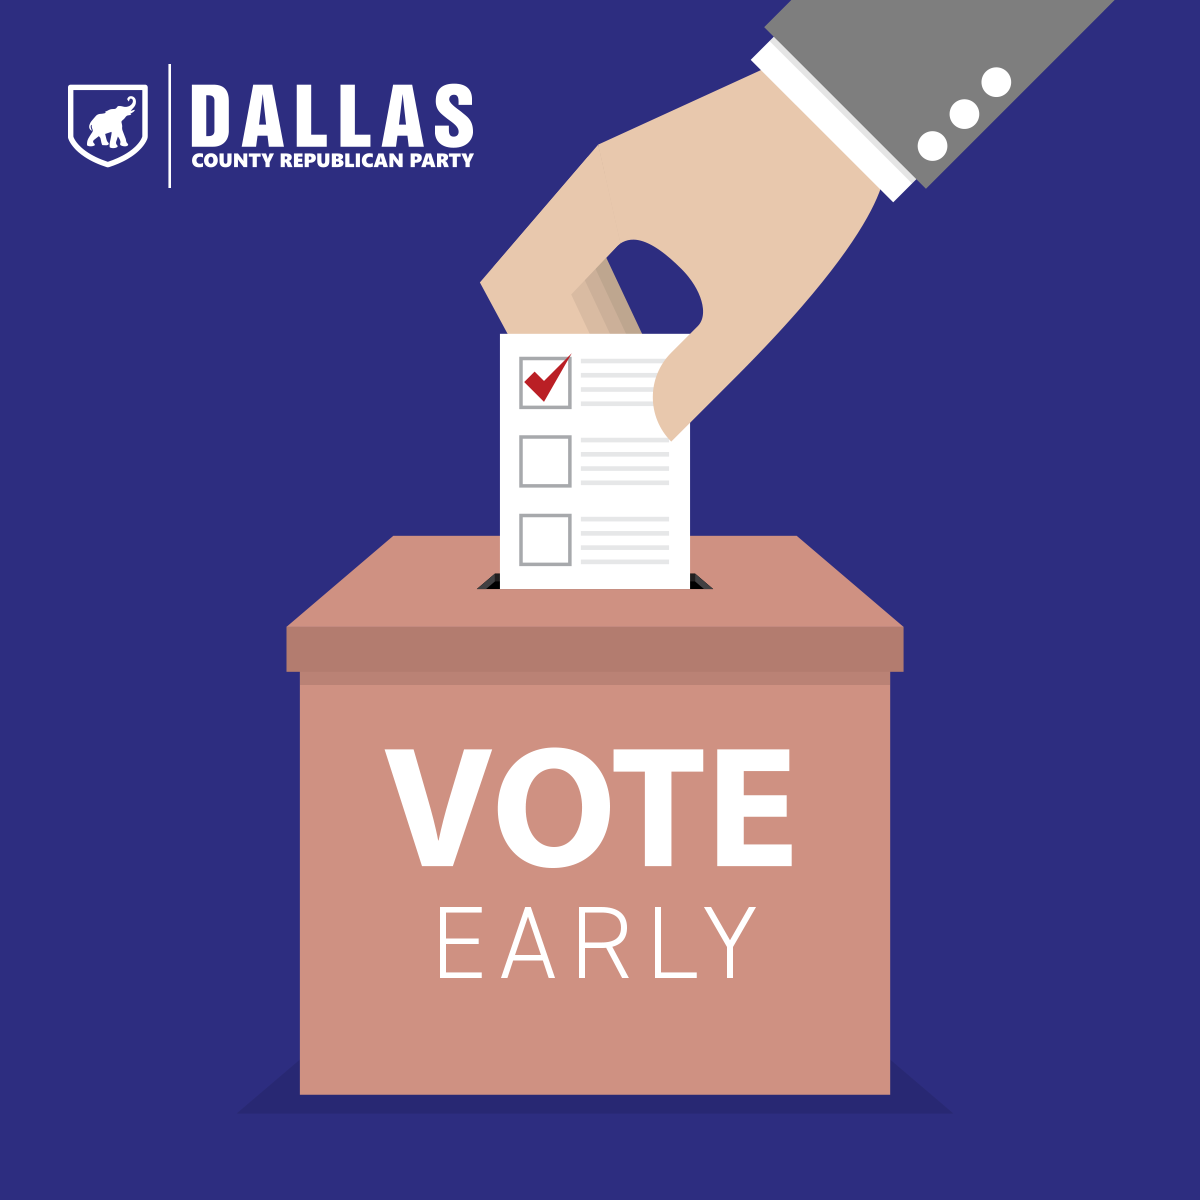 Today is the first day to early vote for the Primary Elections! Find your early voting locations here: dall1229.maps.arcgis.com/apps/webappvie…